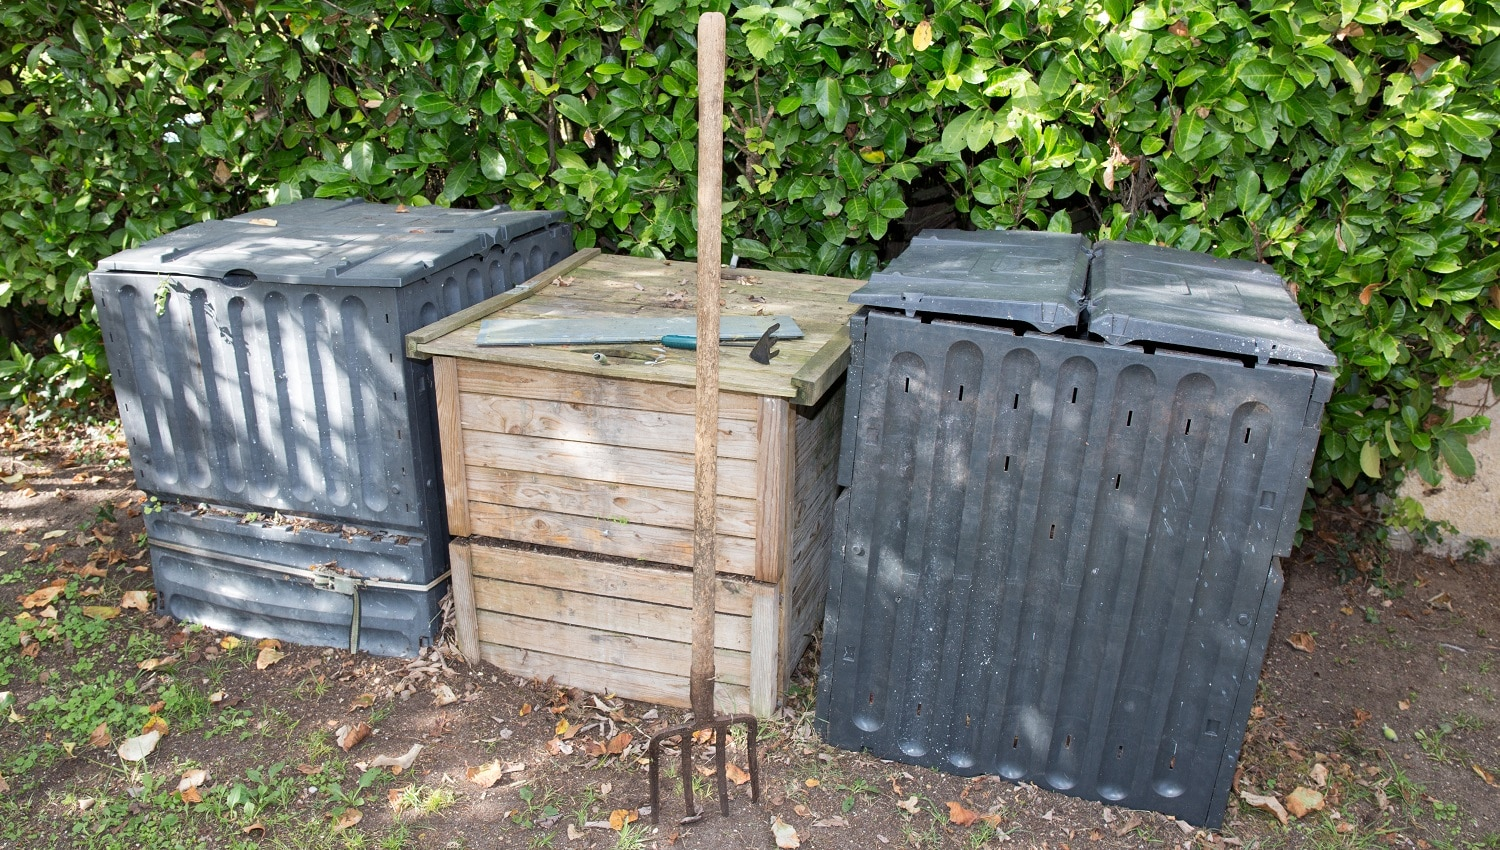 outdoor composting bin for recycling kitchen and garden organic waste